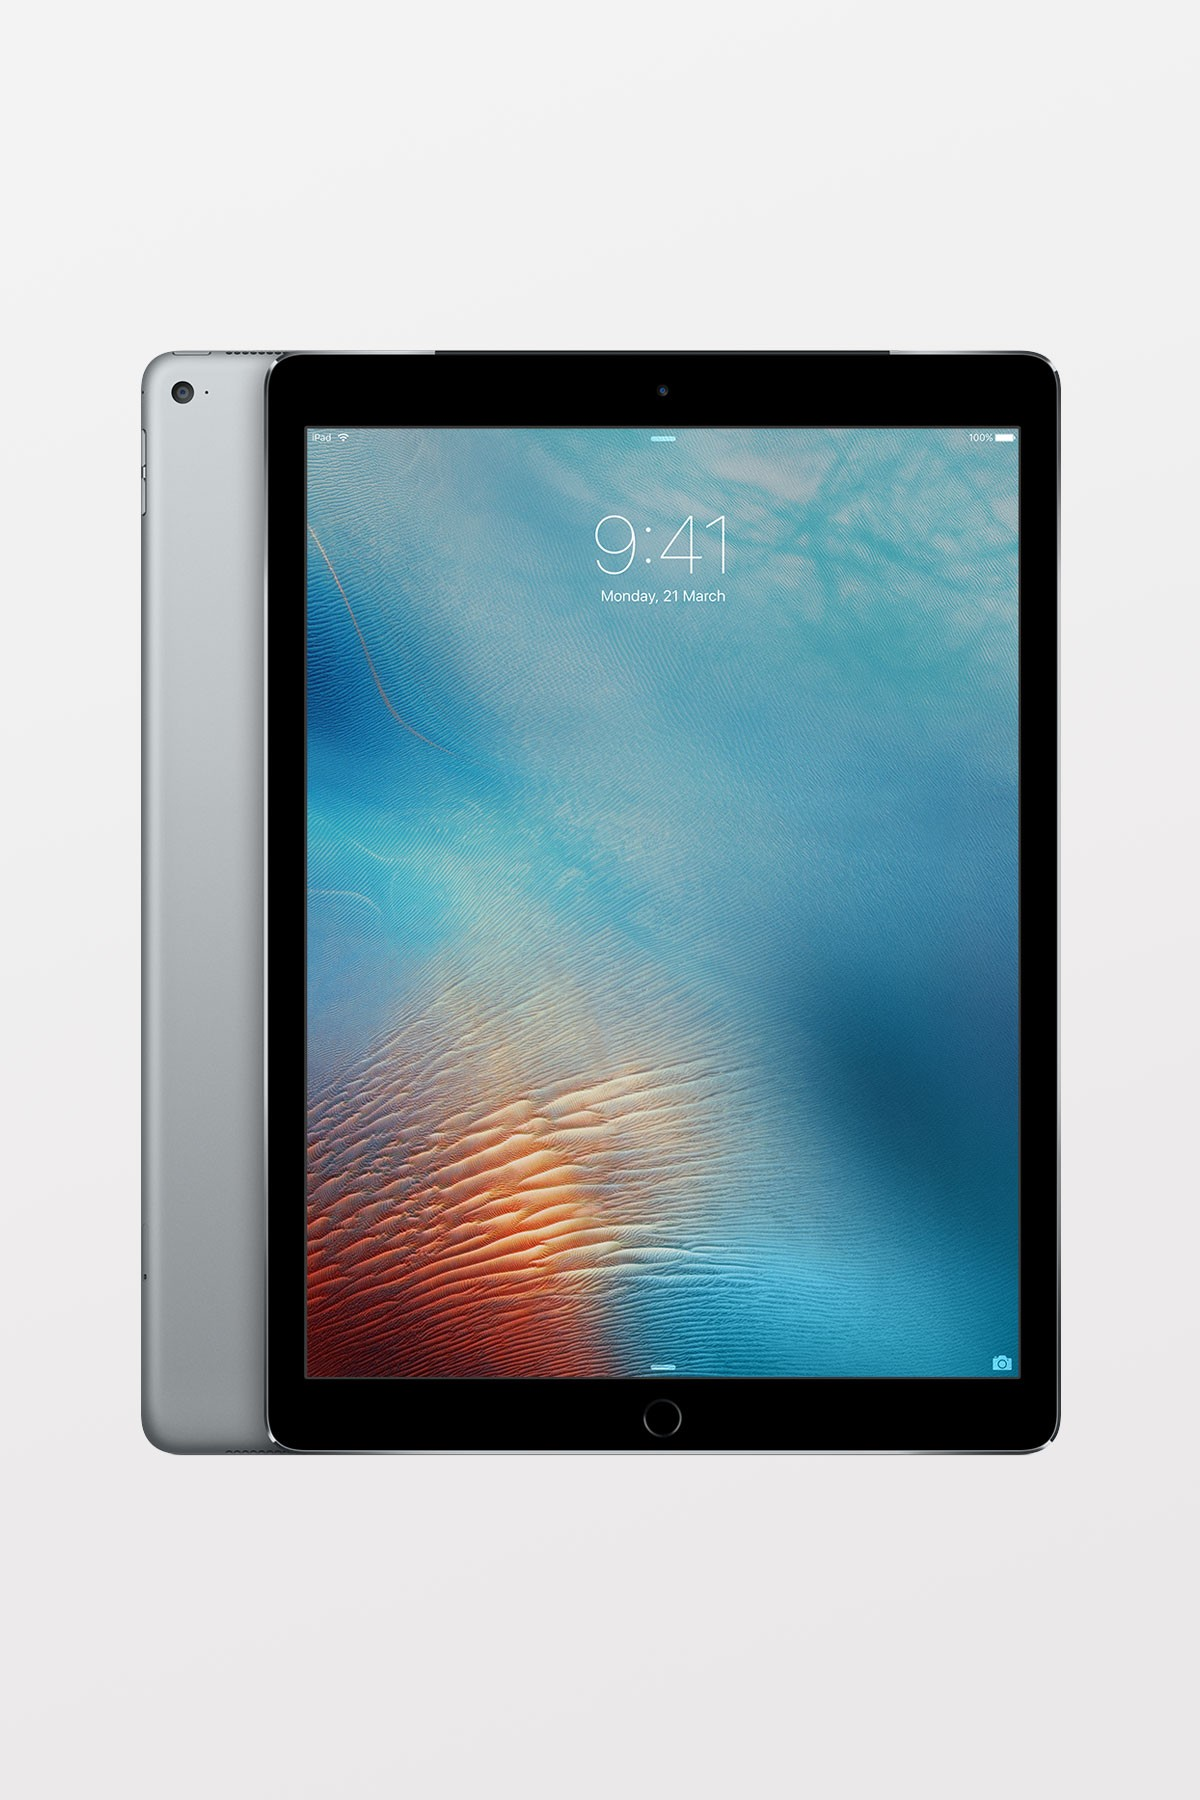 Apple iPad Pro 12.9-inch Wi-Fi + Cellular 256GB - Space Grey